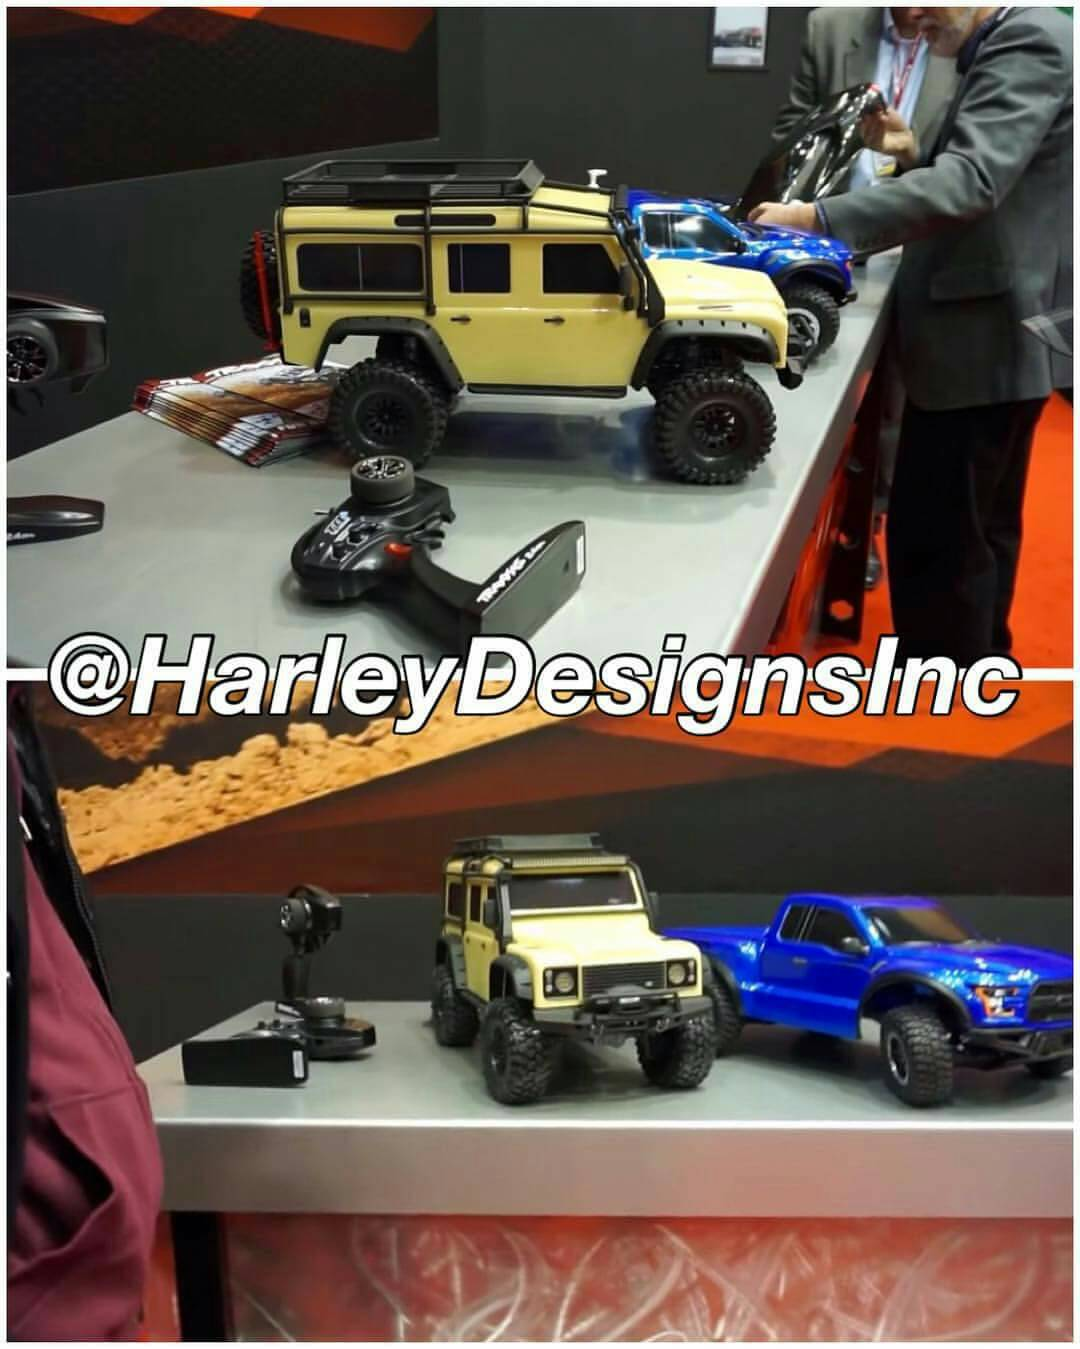 Traxxas TRX-4 1/10 Scale And Trail Crawler 8ad6f81c6c57b627454155cab55ee718